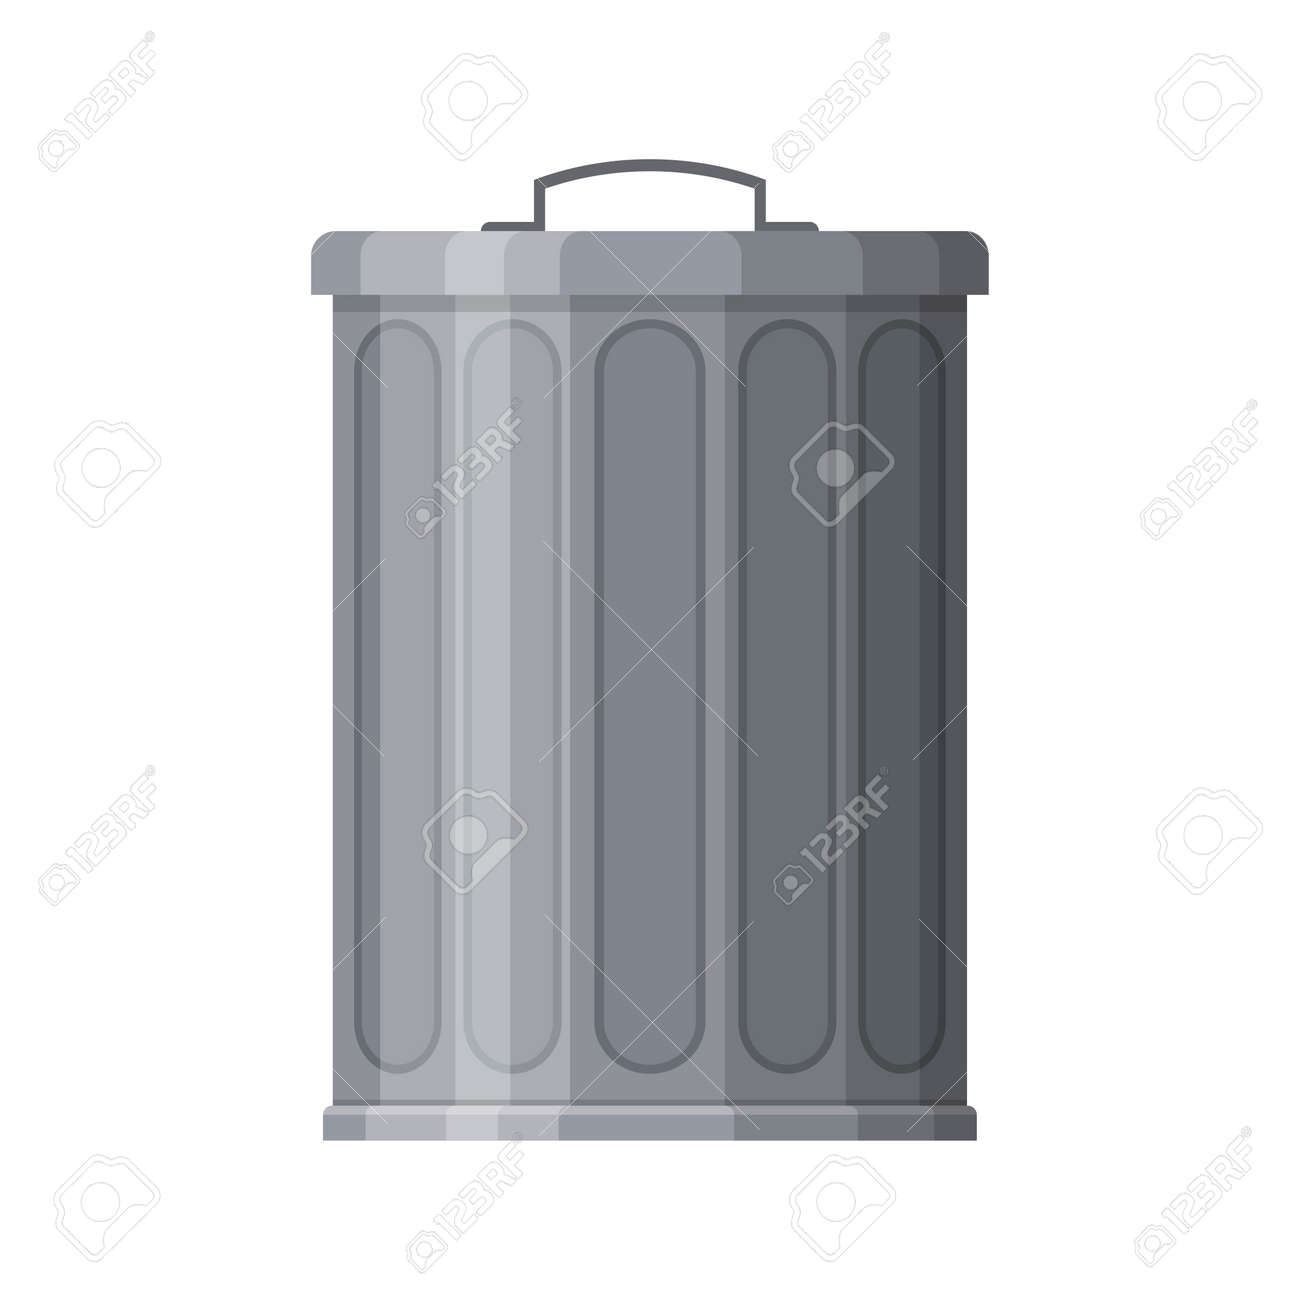 Metal trash bin isolated on white background. Garbage container with closed lid. Steel trash bucket. Vector illustration - 162713194